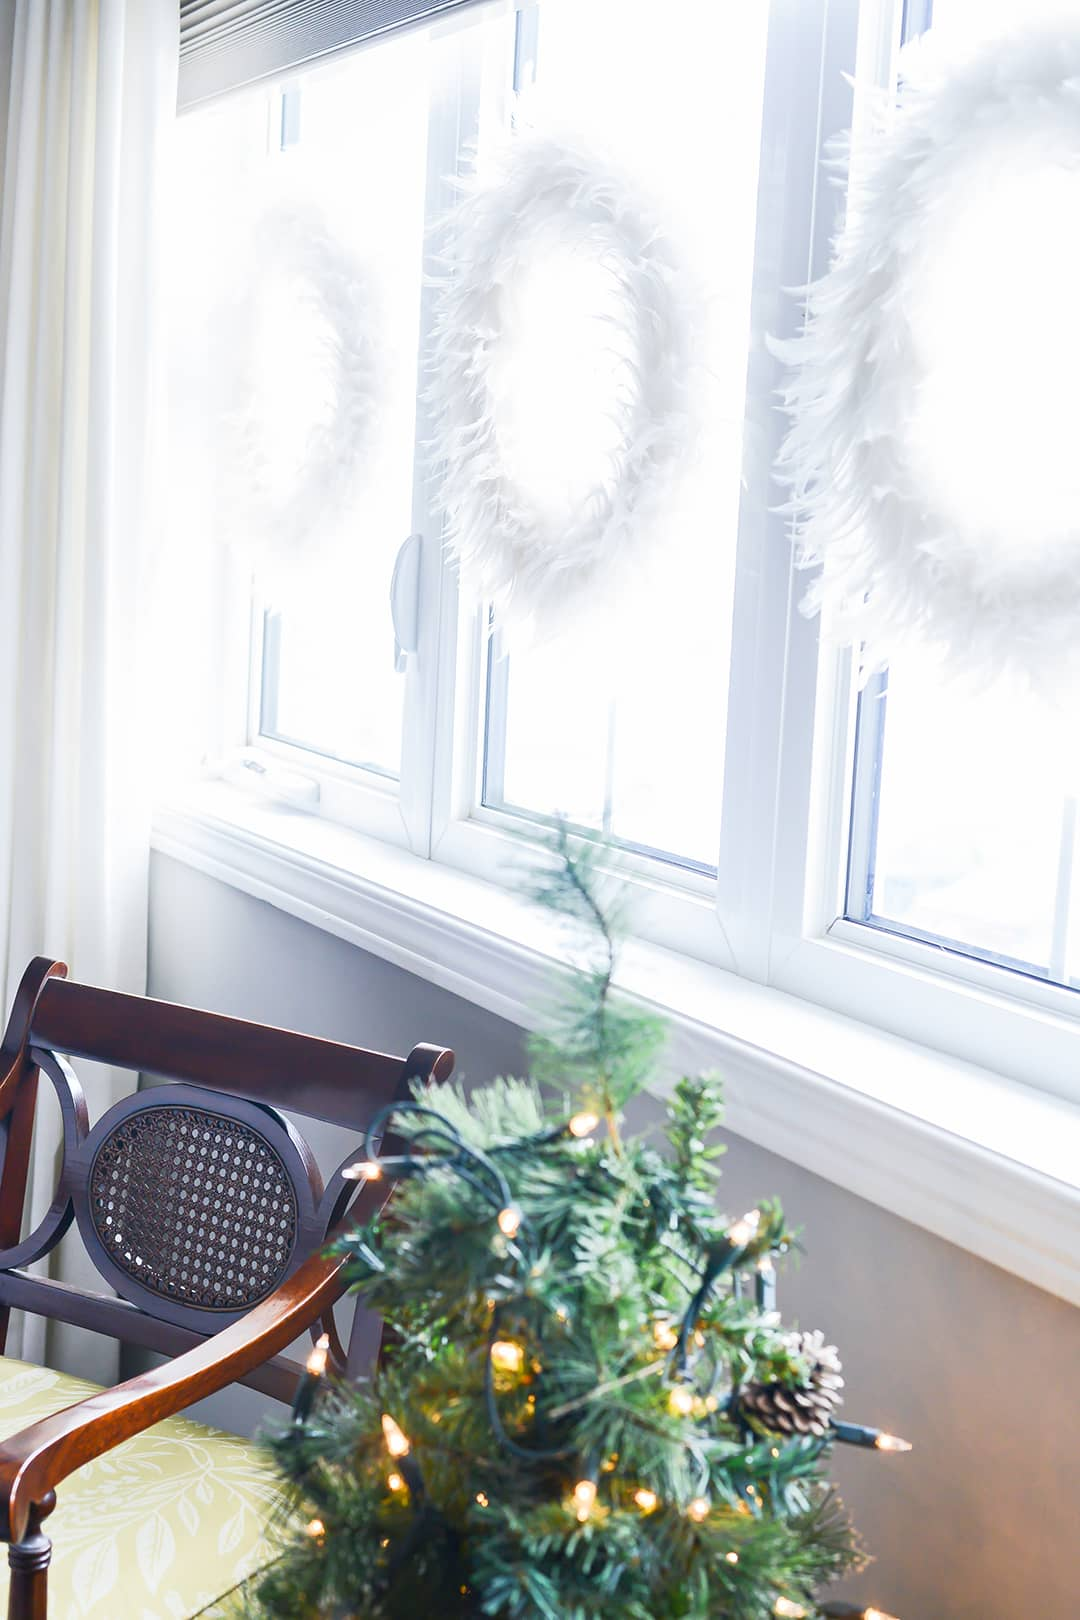 Master bedroom has fluffy white feather wreaths hanging along all 3 windows, along with an accent chair and table top Christmas tree on a small side table.